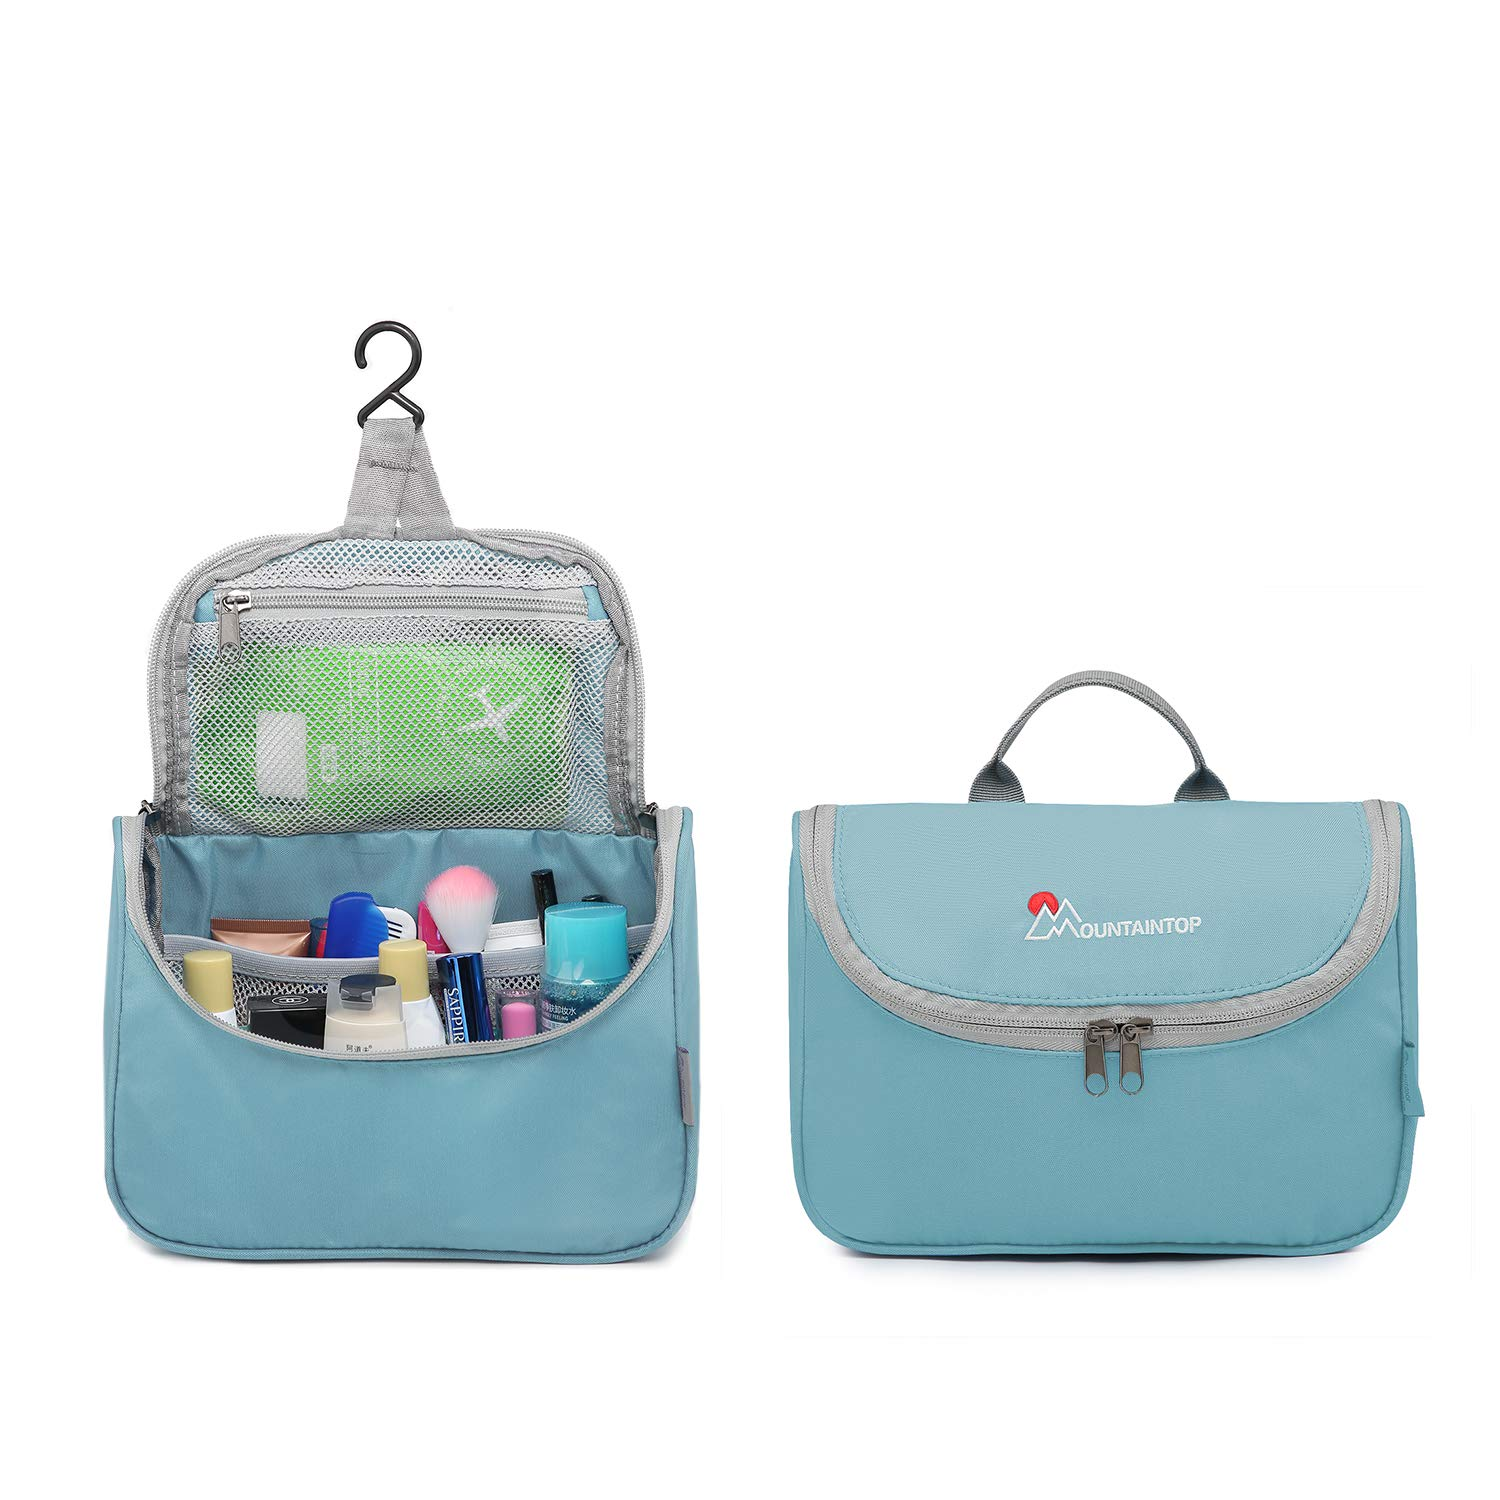 Mountaintop toiletry bag for hanging up for travel vacation, 23.5 x 18 x 6 cm LTD